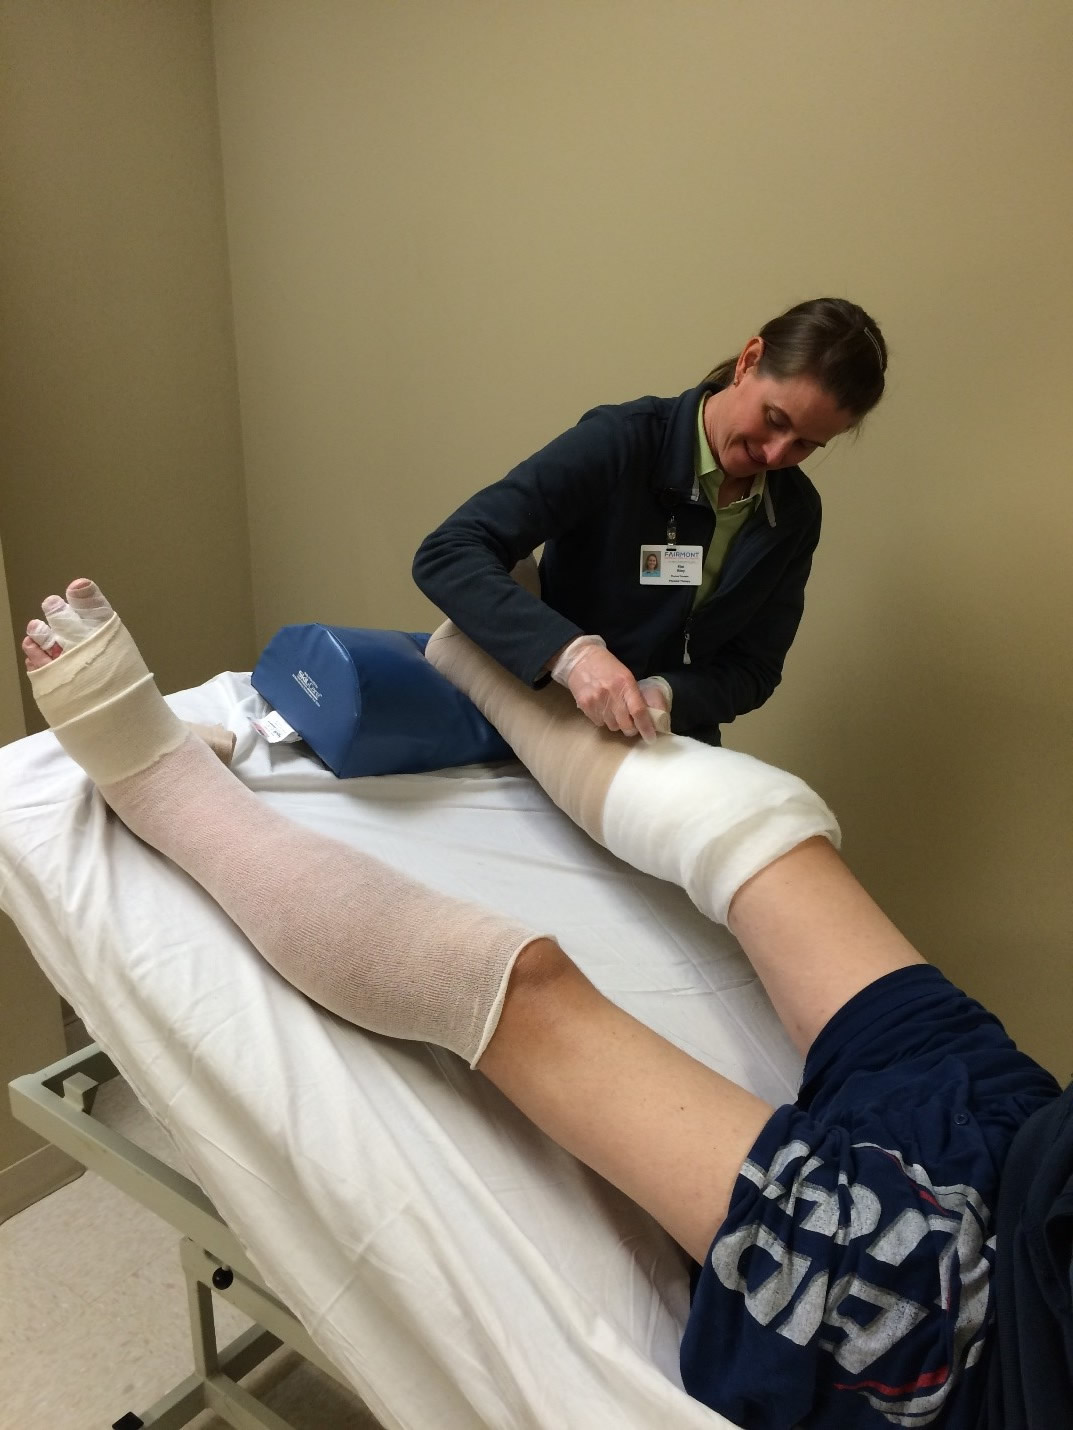 Image of Lymphedema Therapist Wrapping Legs